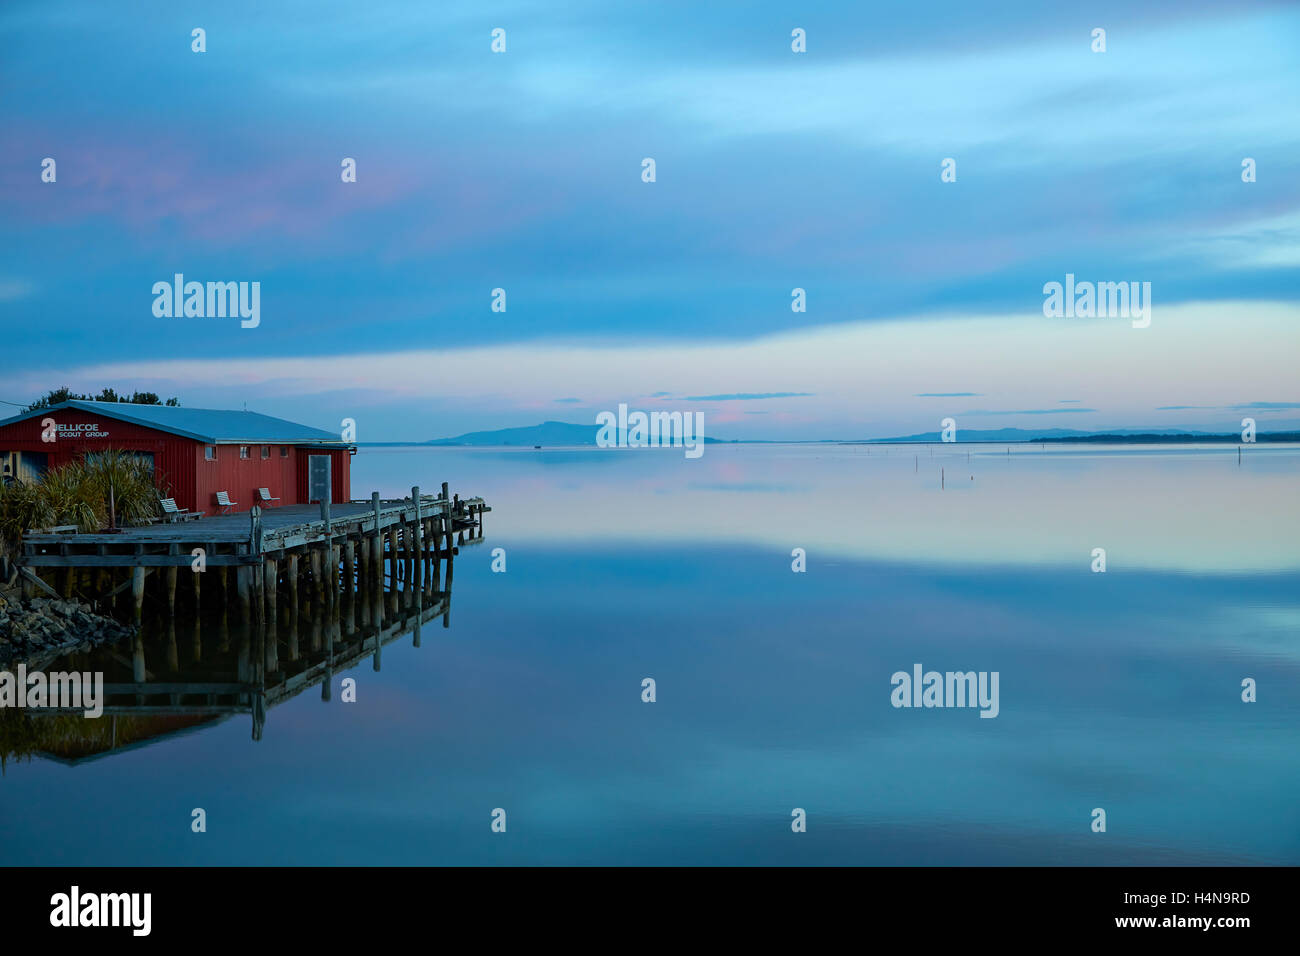 Jellicoe Sea Scout Building and reflections in New River Estuary at dusk, Invercargill, Southland, South Island, - Stock Image